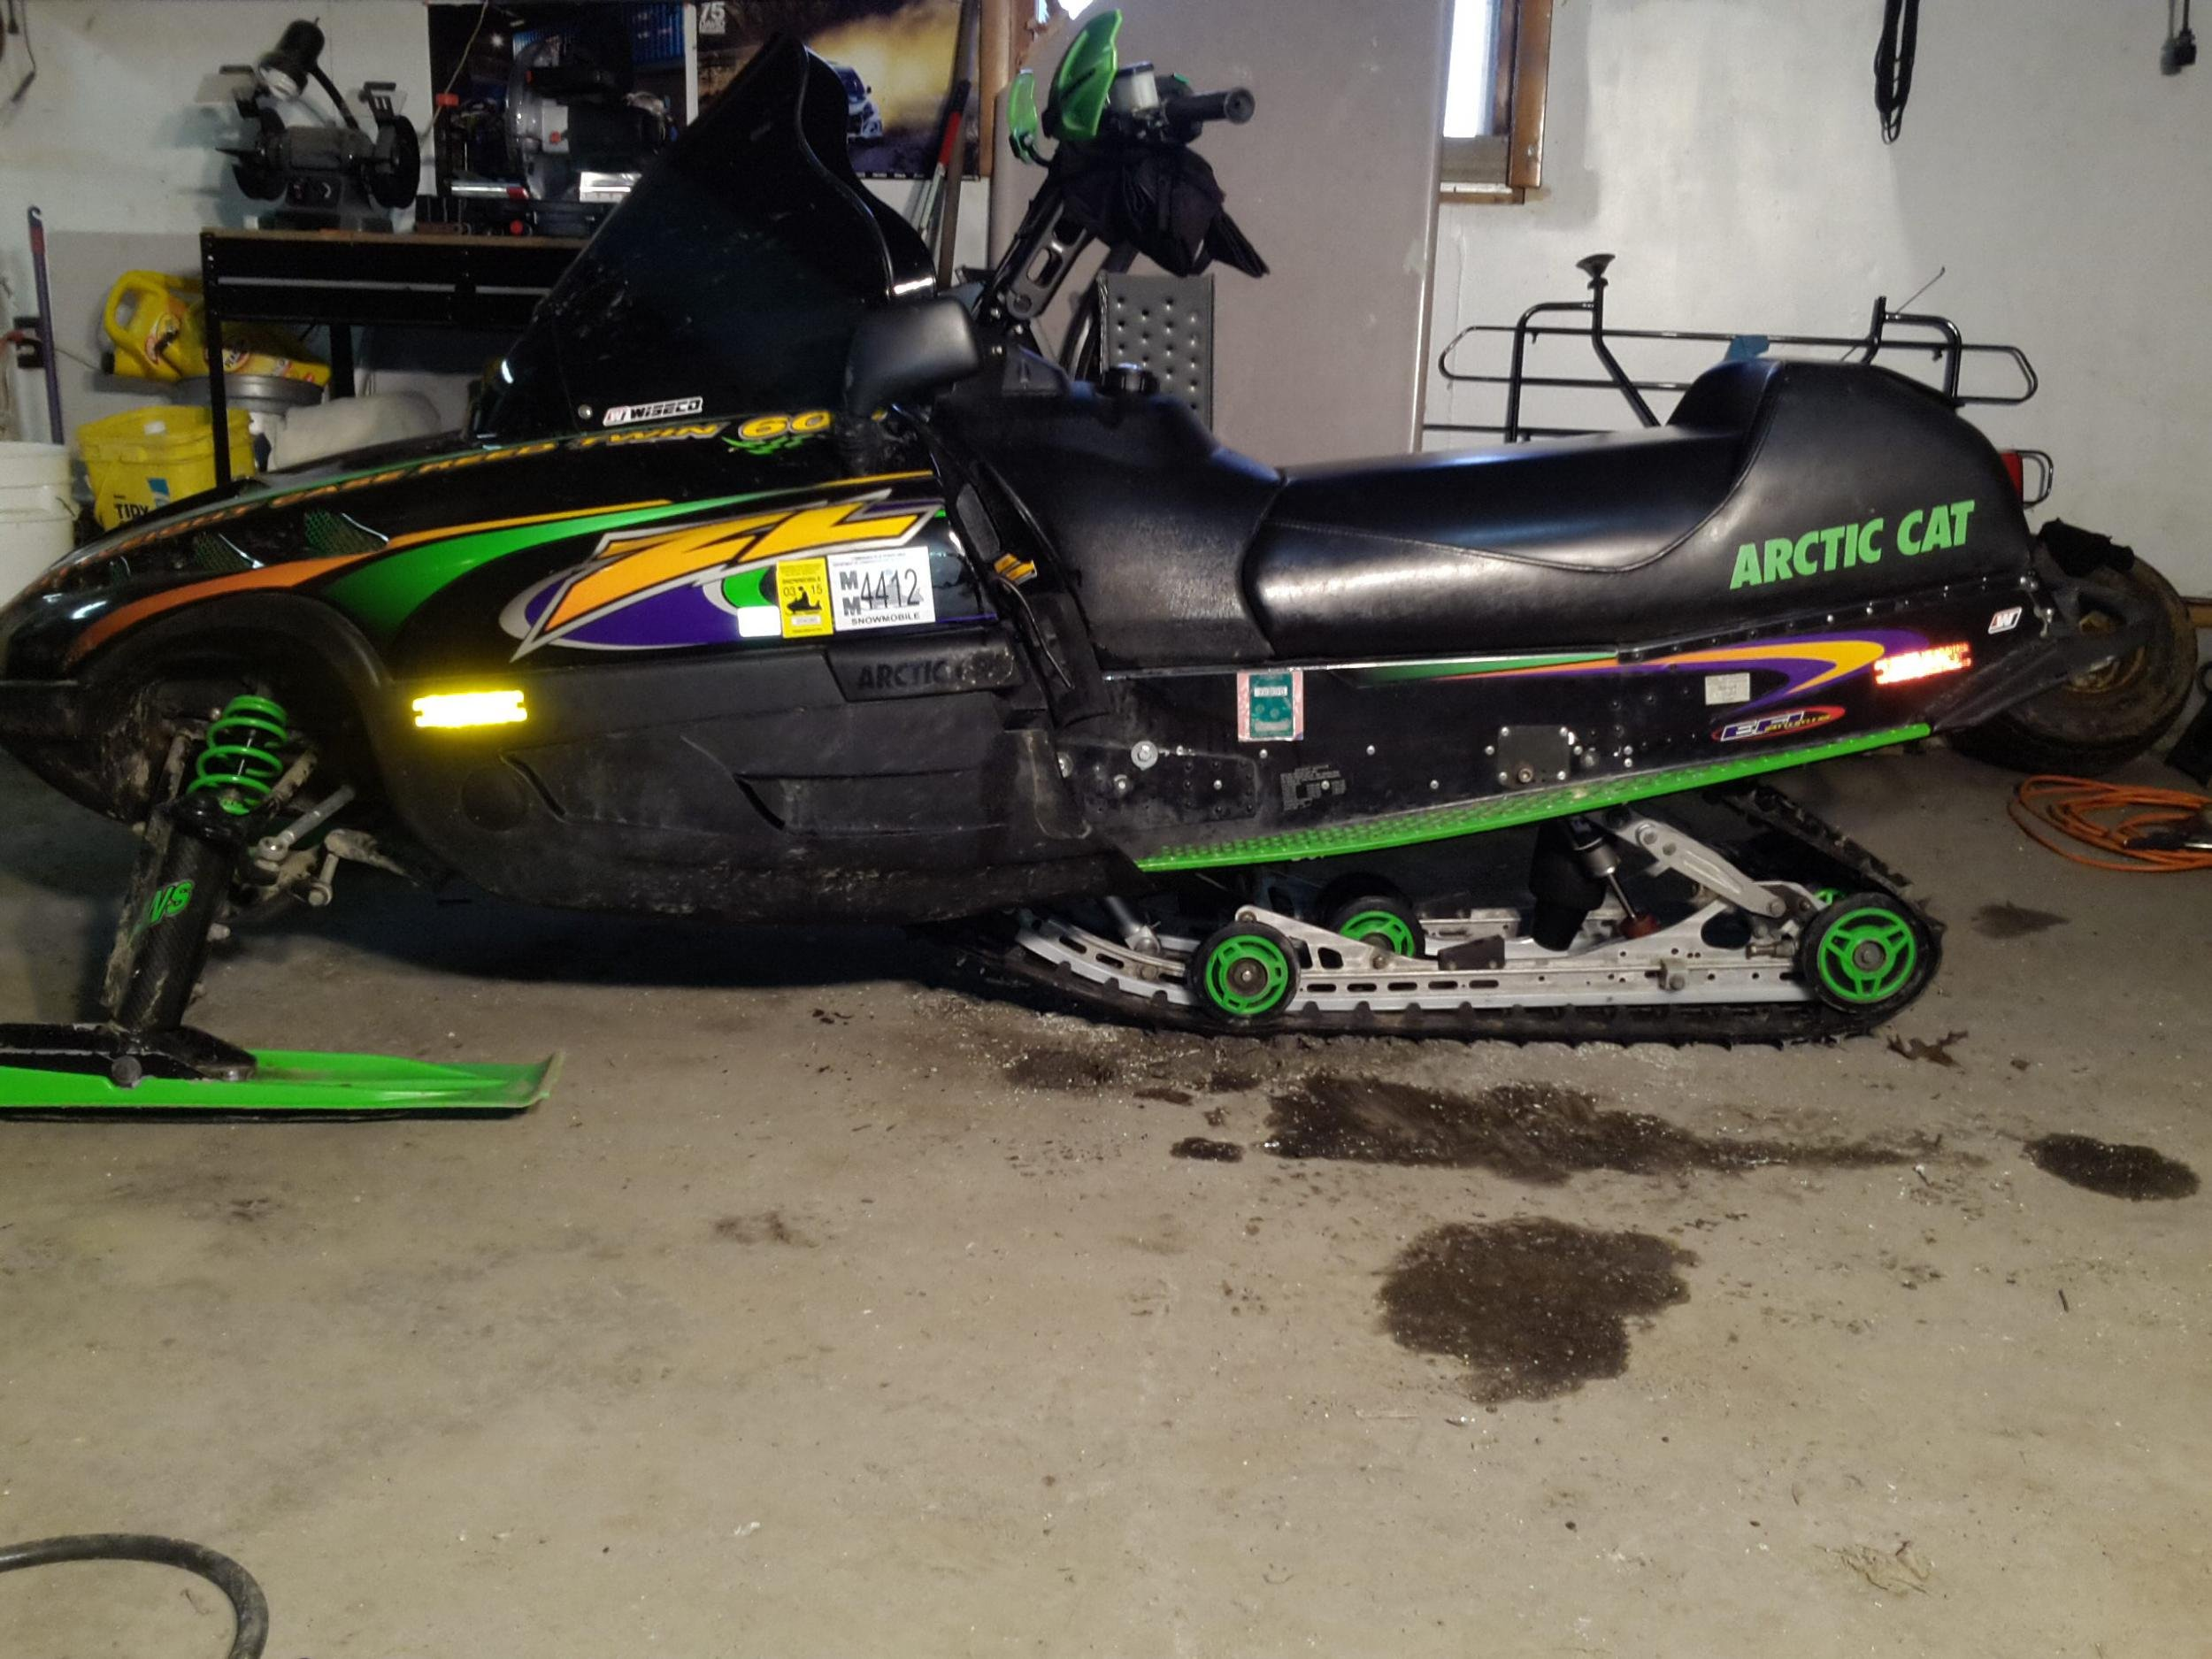 Wiring 2000 Zrt 600 Arctic Cat Real Diagram What Did You Do To Zr Zl Ext Tcat Today Page 50 1999 2001 Harness